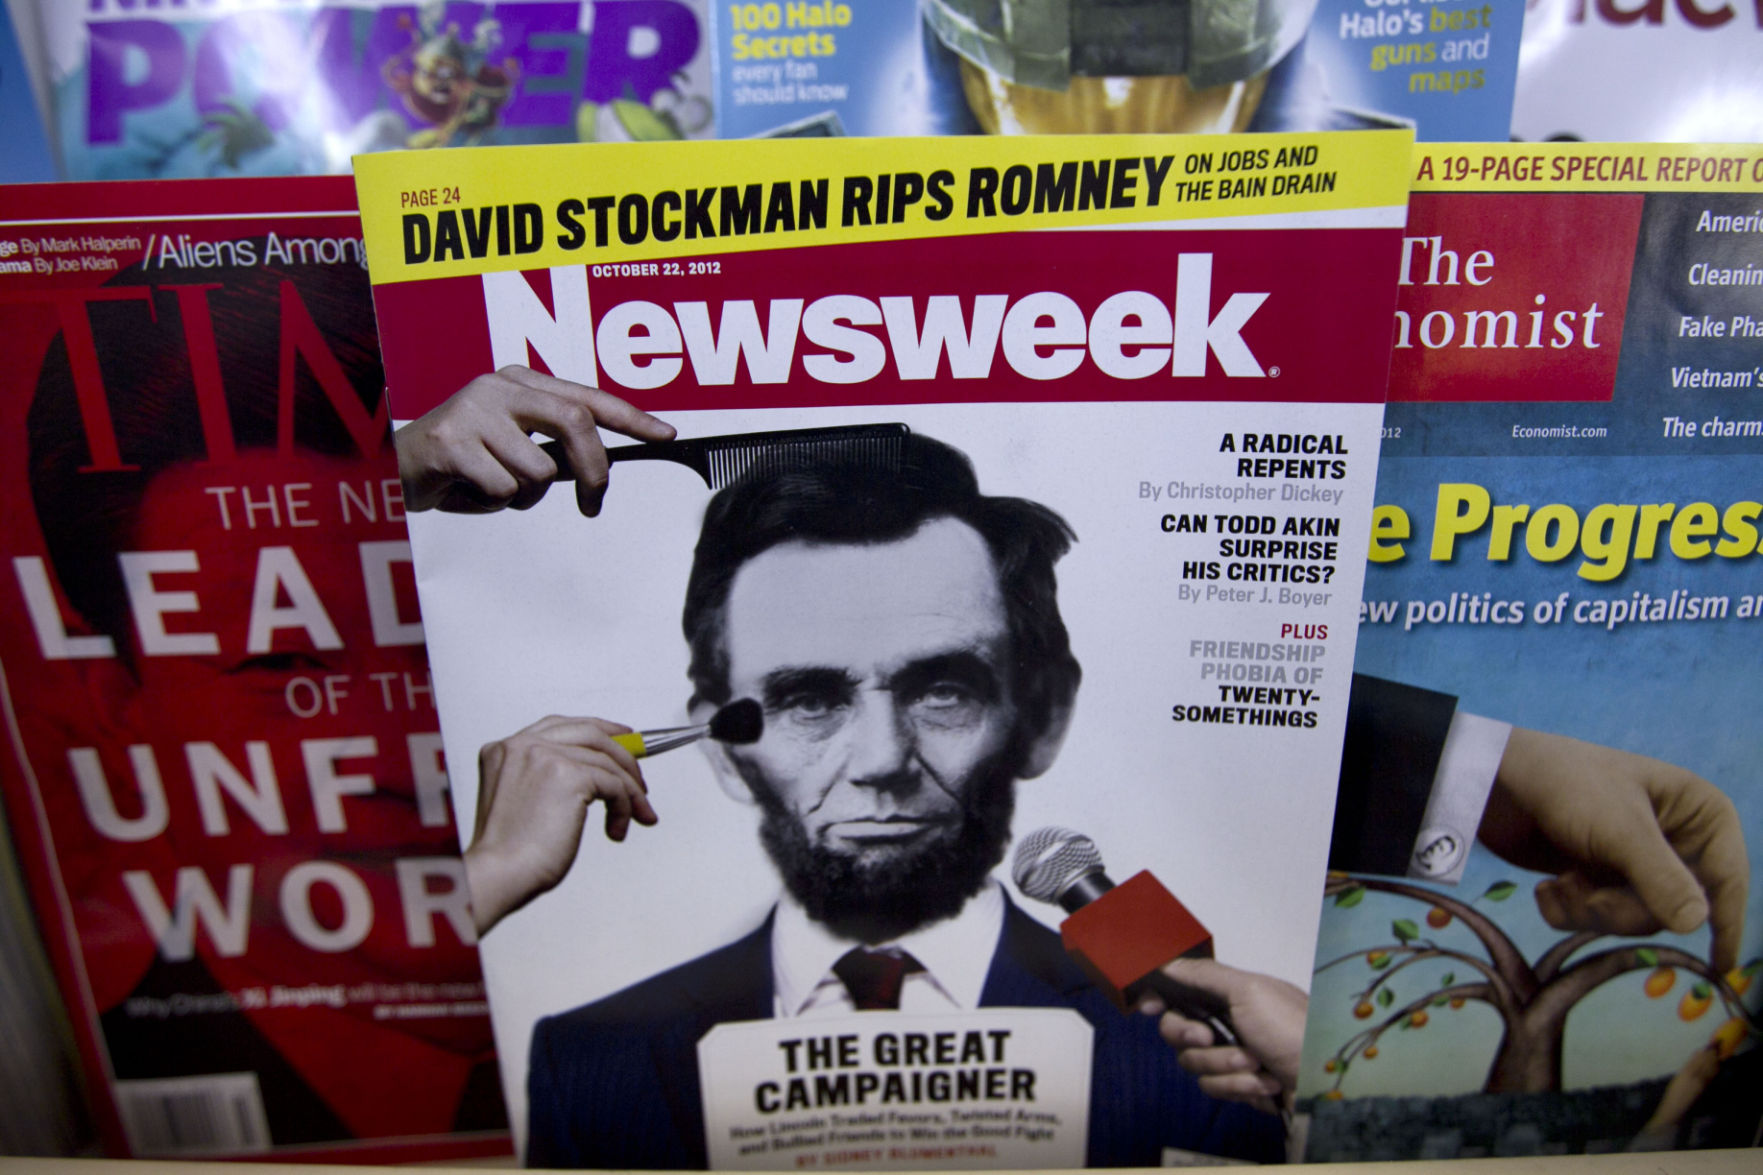 Newsweek magazine going out of business